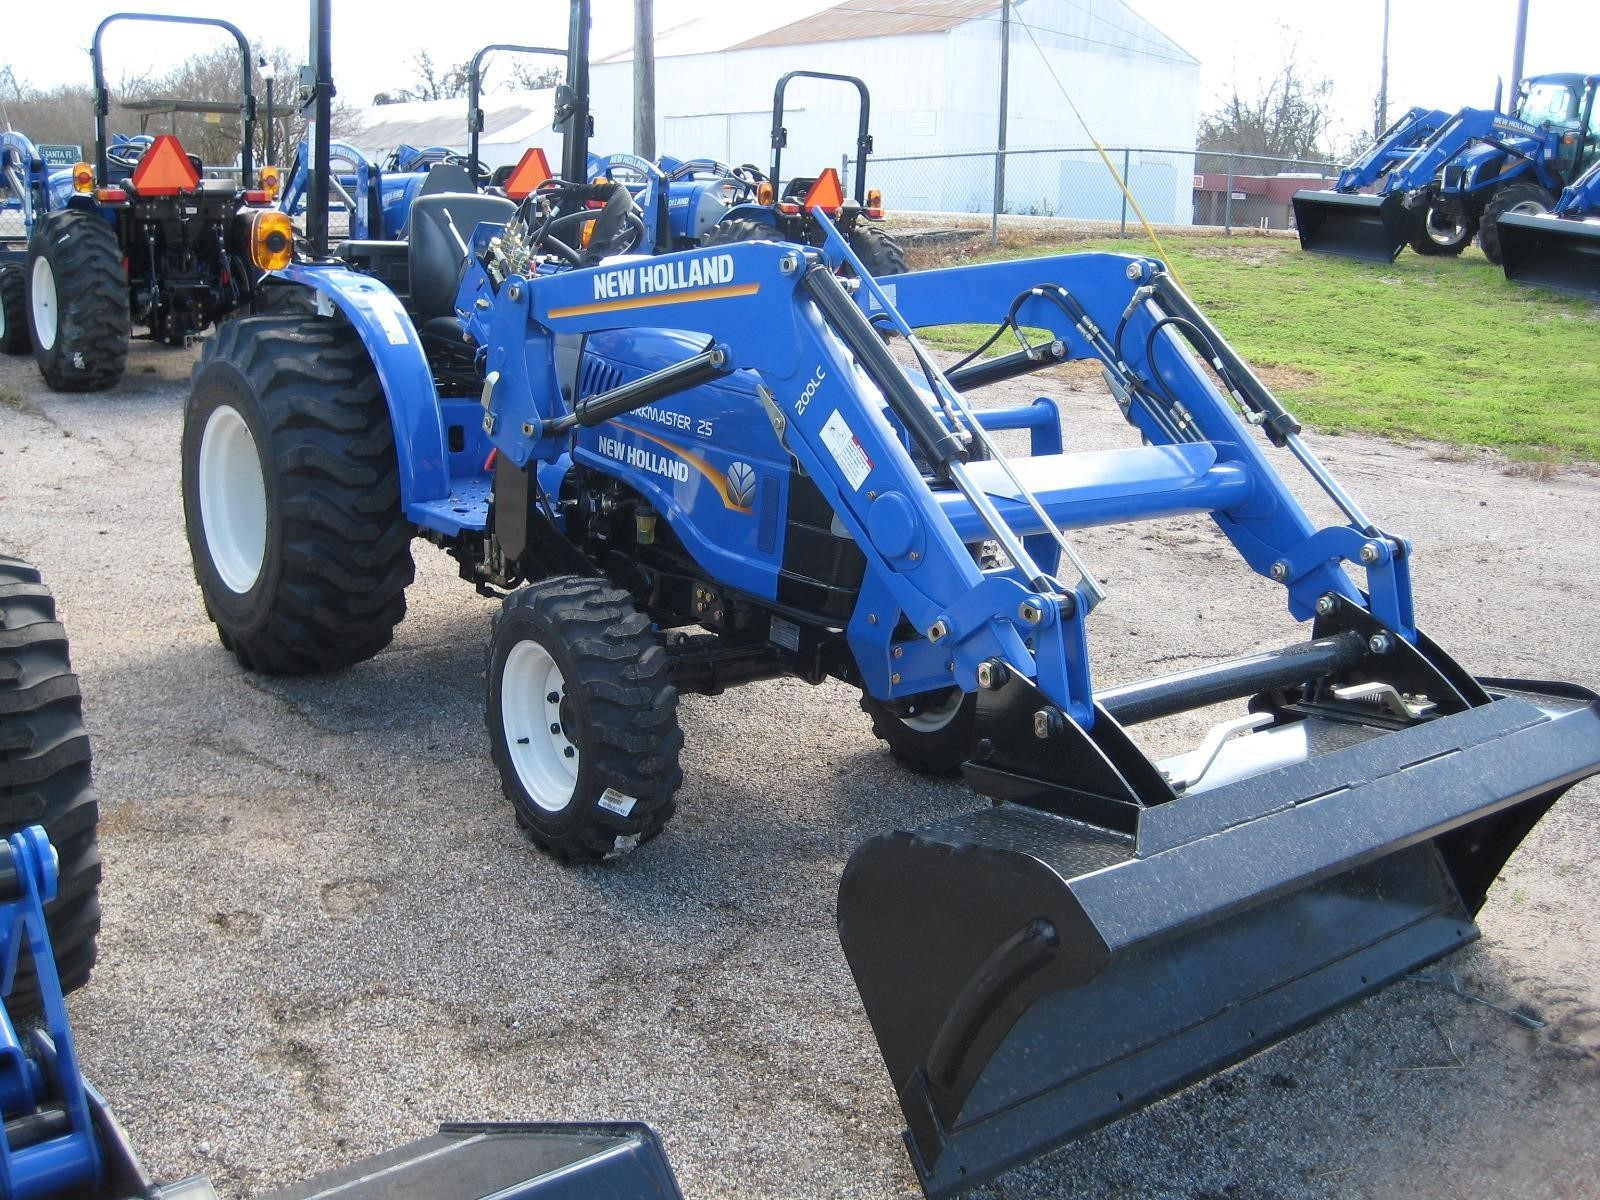 2021 New Holland Workmaster 25 Tractor